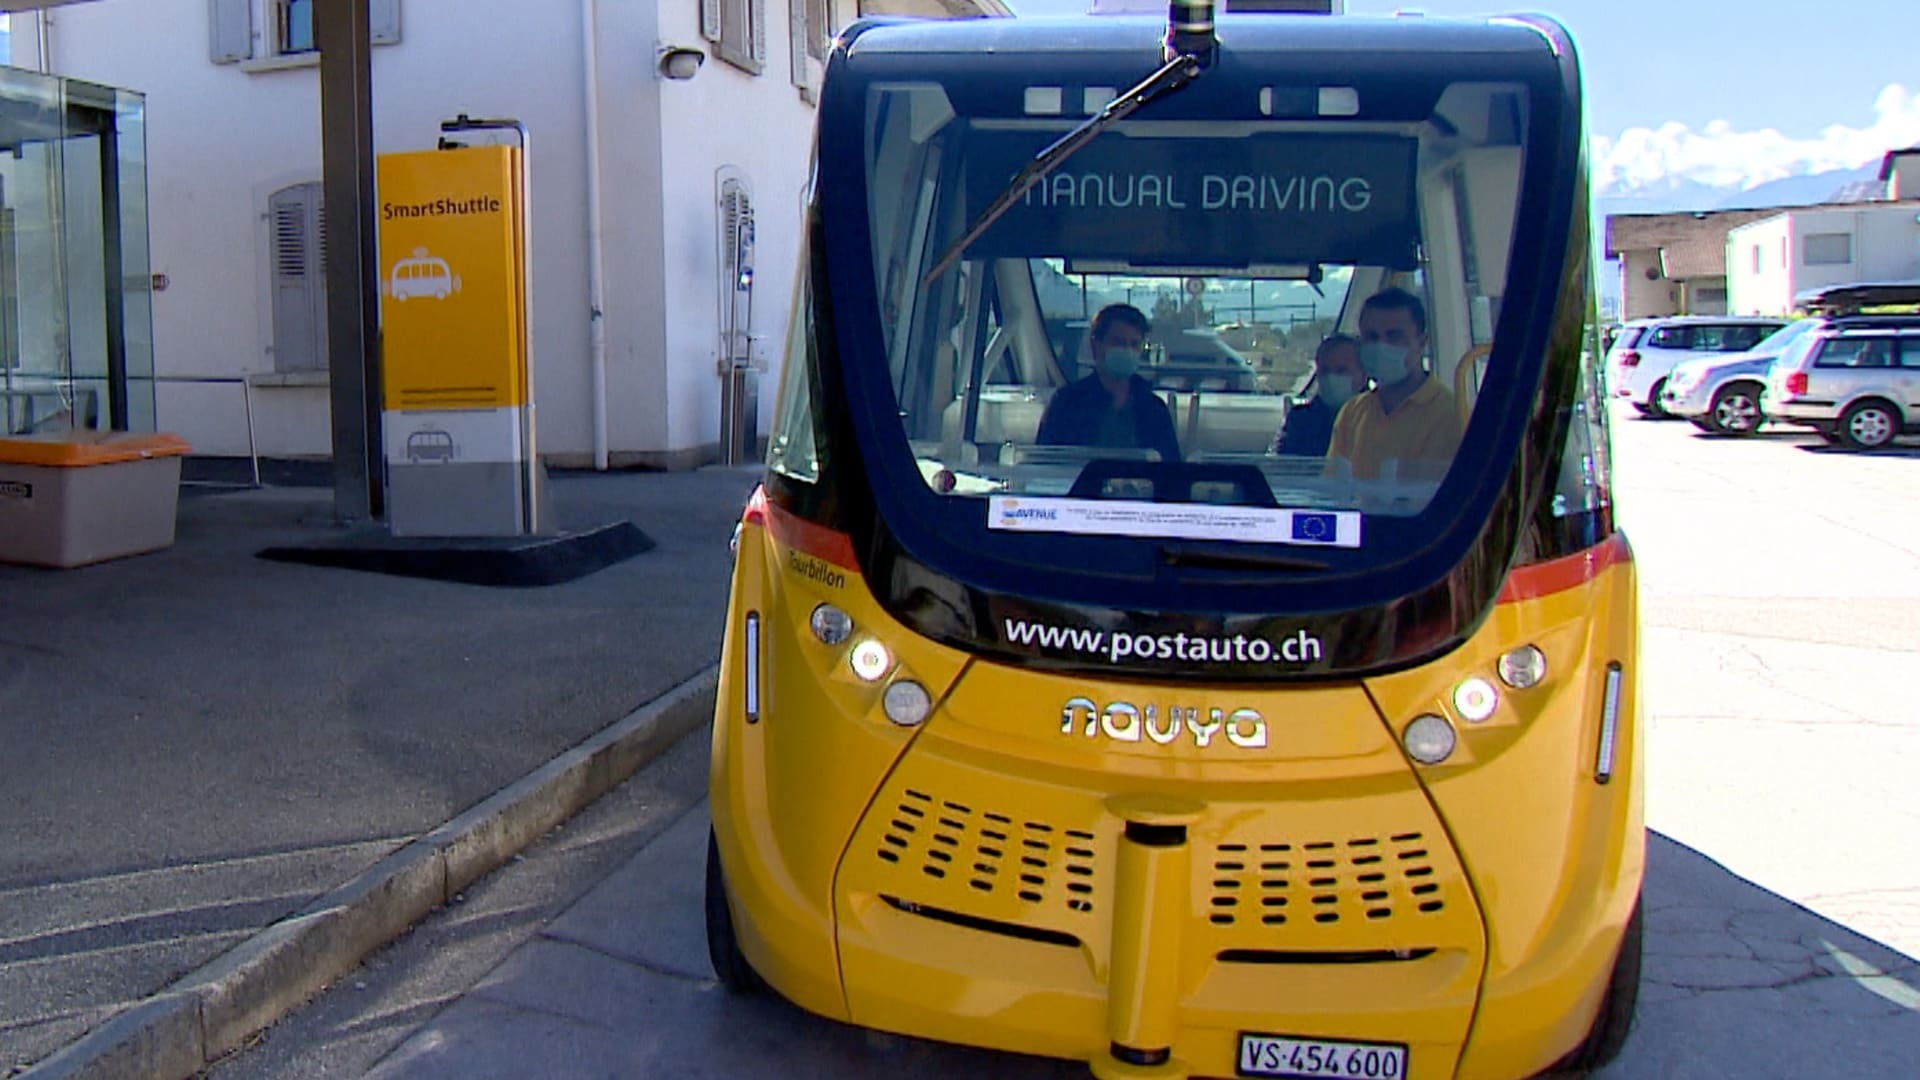 Switzerland pushes ahead with self-driving buses